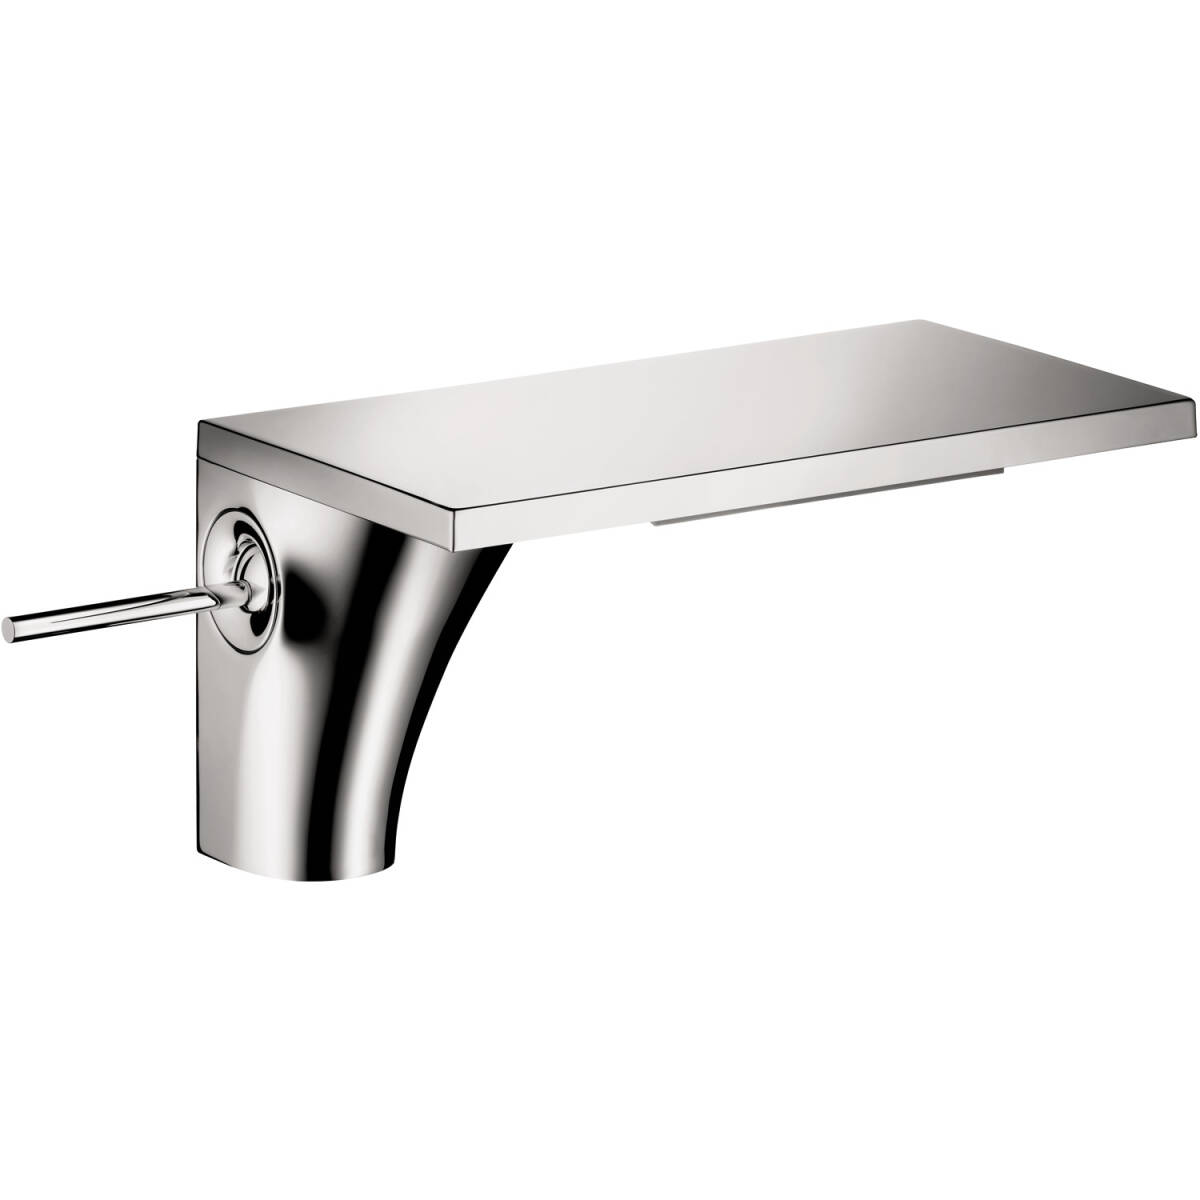 Single lever basin mixer 110 with waste set, Chrome, 18010001